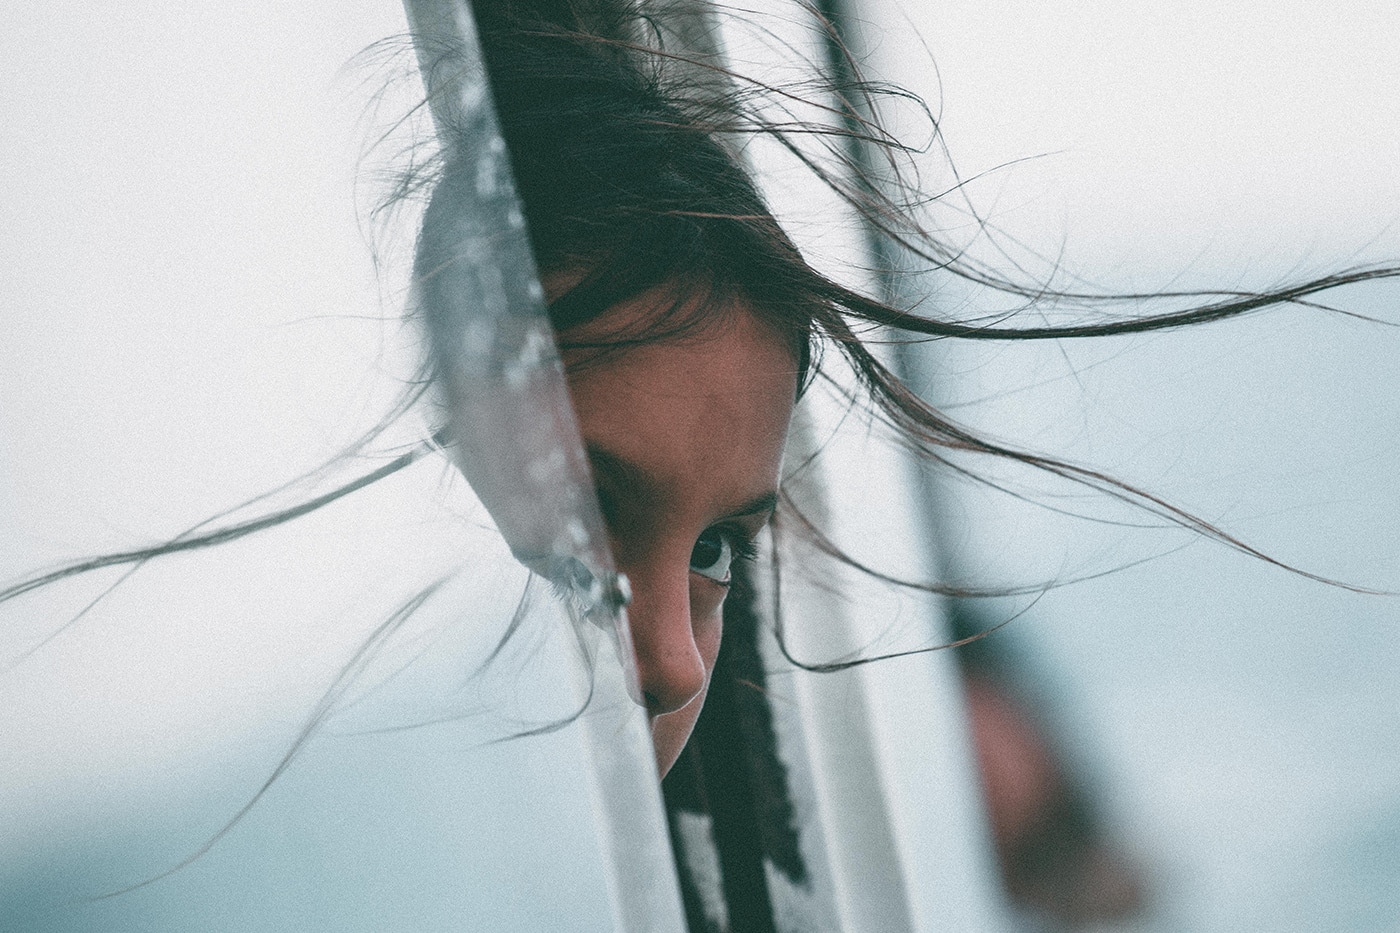 Young girl looking somber with head part way out an open car window with hair blowing in the wind. Face is obscured by the window and we only see one eye.